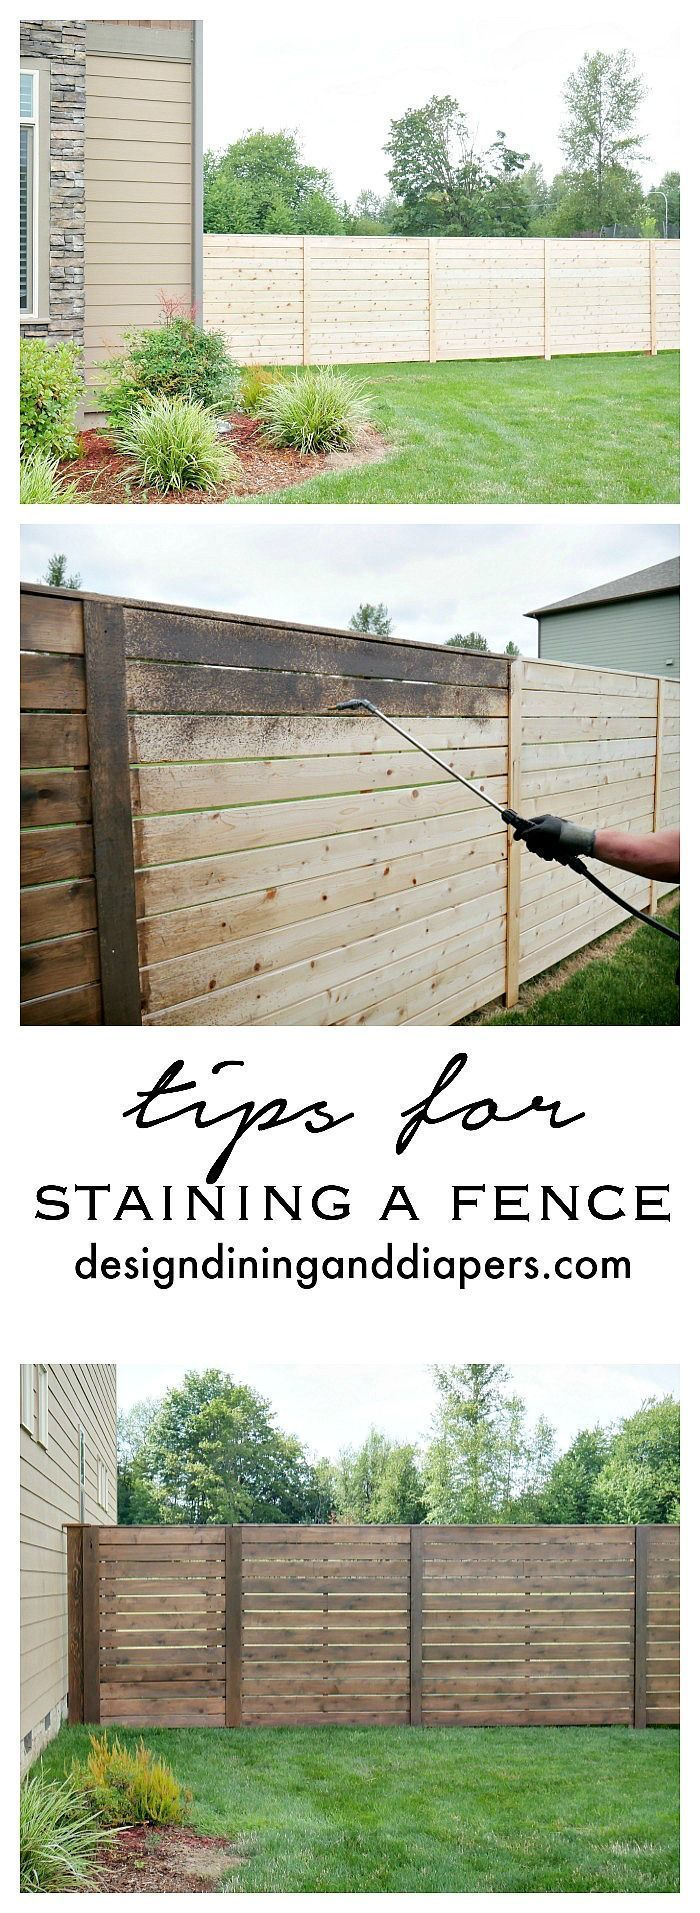 Awesome cheap privacy fencing privacy fence styles ideas home wood tips for staining a fence baanklon Gallery